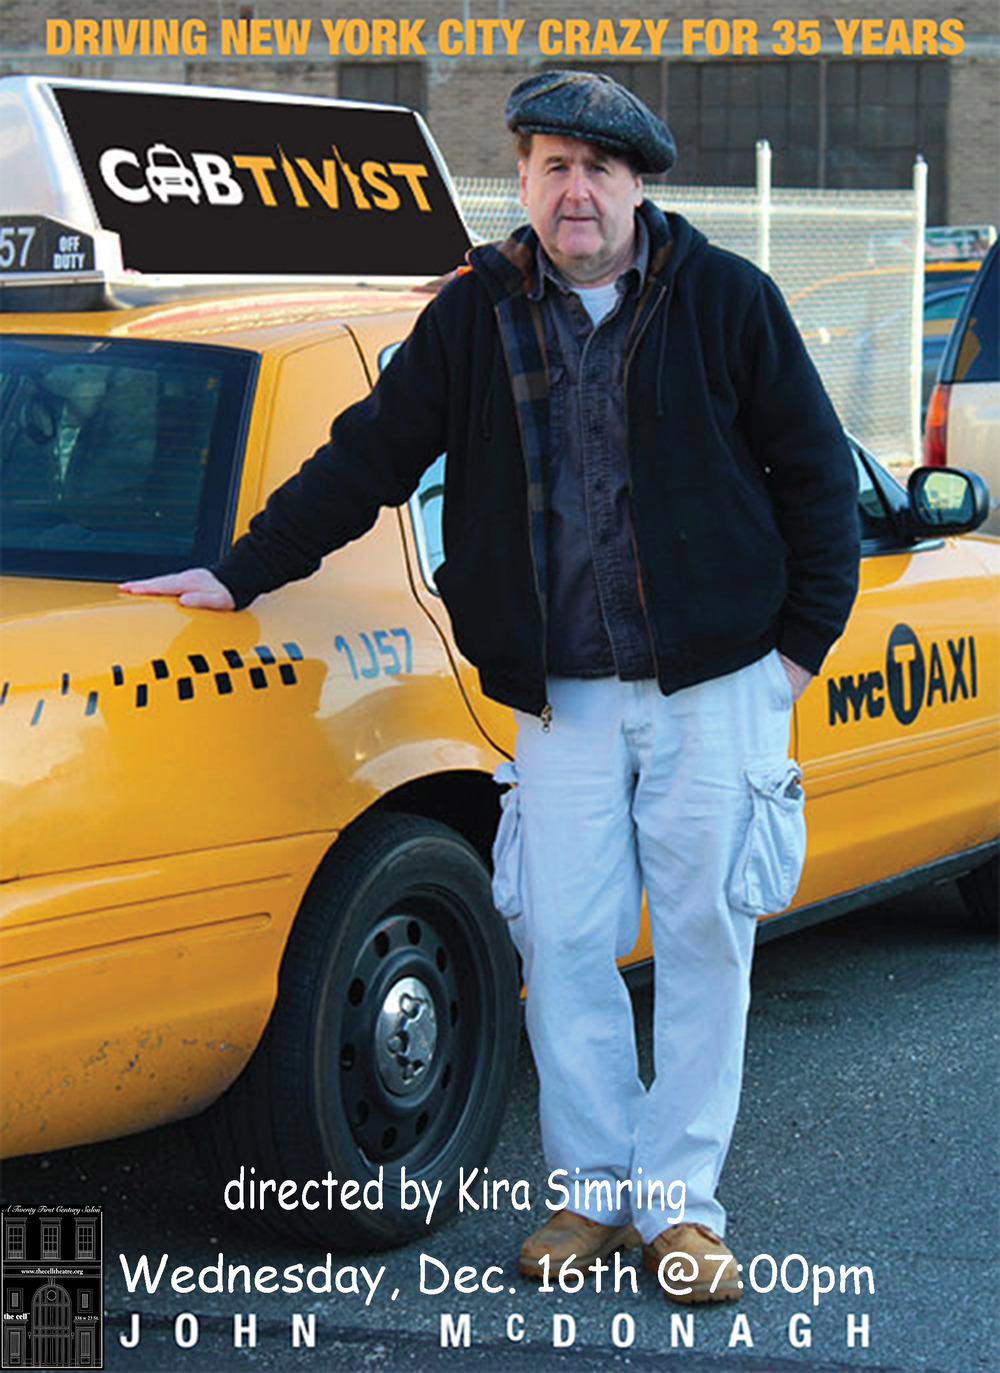 Last chance to see  John McDonagh's hilarious  Cabtivist  at nancy manocherian's  the cell  on Wednesday, December 16th, at 7:00 p.m.  Directed by Kira Simring, Cabtivist is laugh-out-loud commentary from behind the wheel of New York's outrageously outspoken activist cab driver.   People are saying...   McDonagh has an incisive wit, is keenly observant and has never lost his sense of wonder at the aberrations of the human race. The man is a superb story teller never lacking in humor.   -  Malachy McCourt , Actor, Activist, author of A Monk Swimming.   J ohn's NYC is the one you wished you got to live in. Lucky us - we get to experience it vicariously through him. Funny and poignant as hell. Check it out  -  Melissa Plaut , author of Hack   He has stories that resonate politically and socially . . . it is New York Folklore at it's best . . . so funny and inventive . . . I loved it, should be seen by everyone . -  David Rothenberg , Founder of the Fortune Society, Broadway publicist and producer.   The bit about England's Stephen Fry had me crying with laughter  -  Ginger Adams Otis,  New York Daily News.  Rip-roaring, side-splitting, tongue-in-cheek one-man play -Irish Echo  McDonagh takes passengers - and theatergoers - on a hell of a ride -New York Daily News